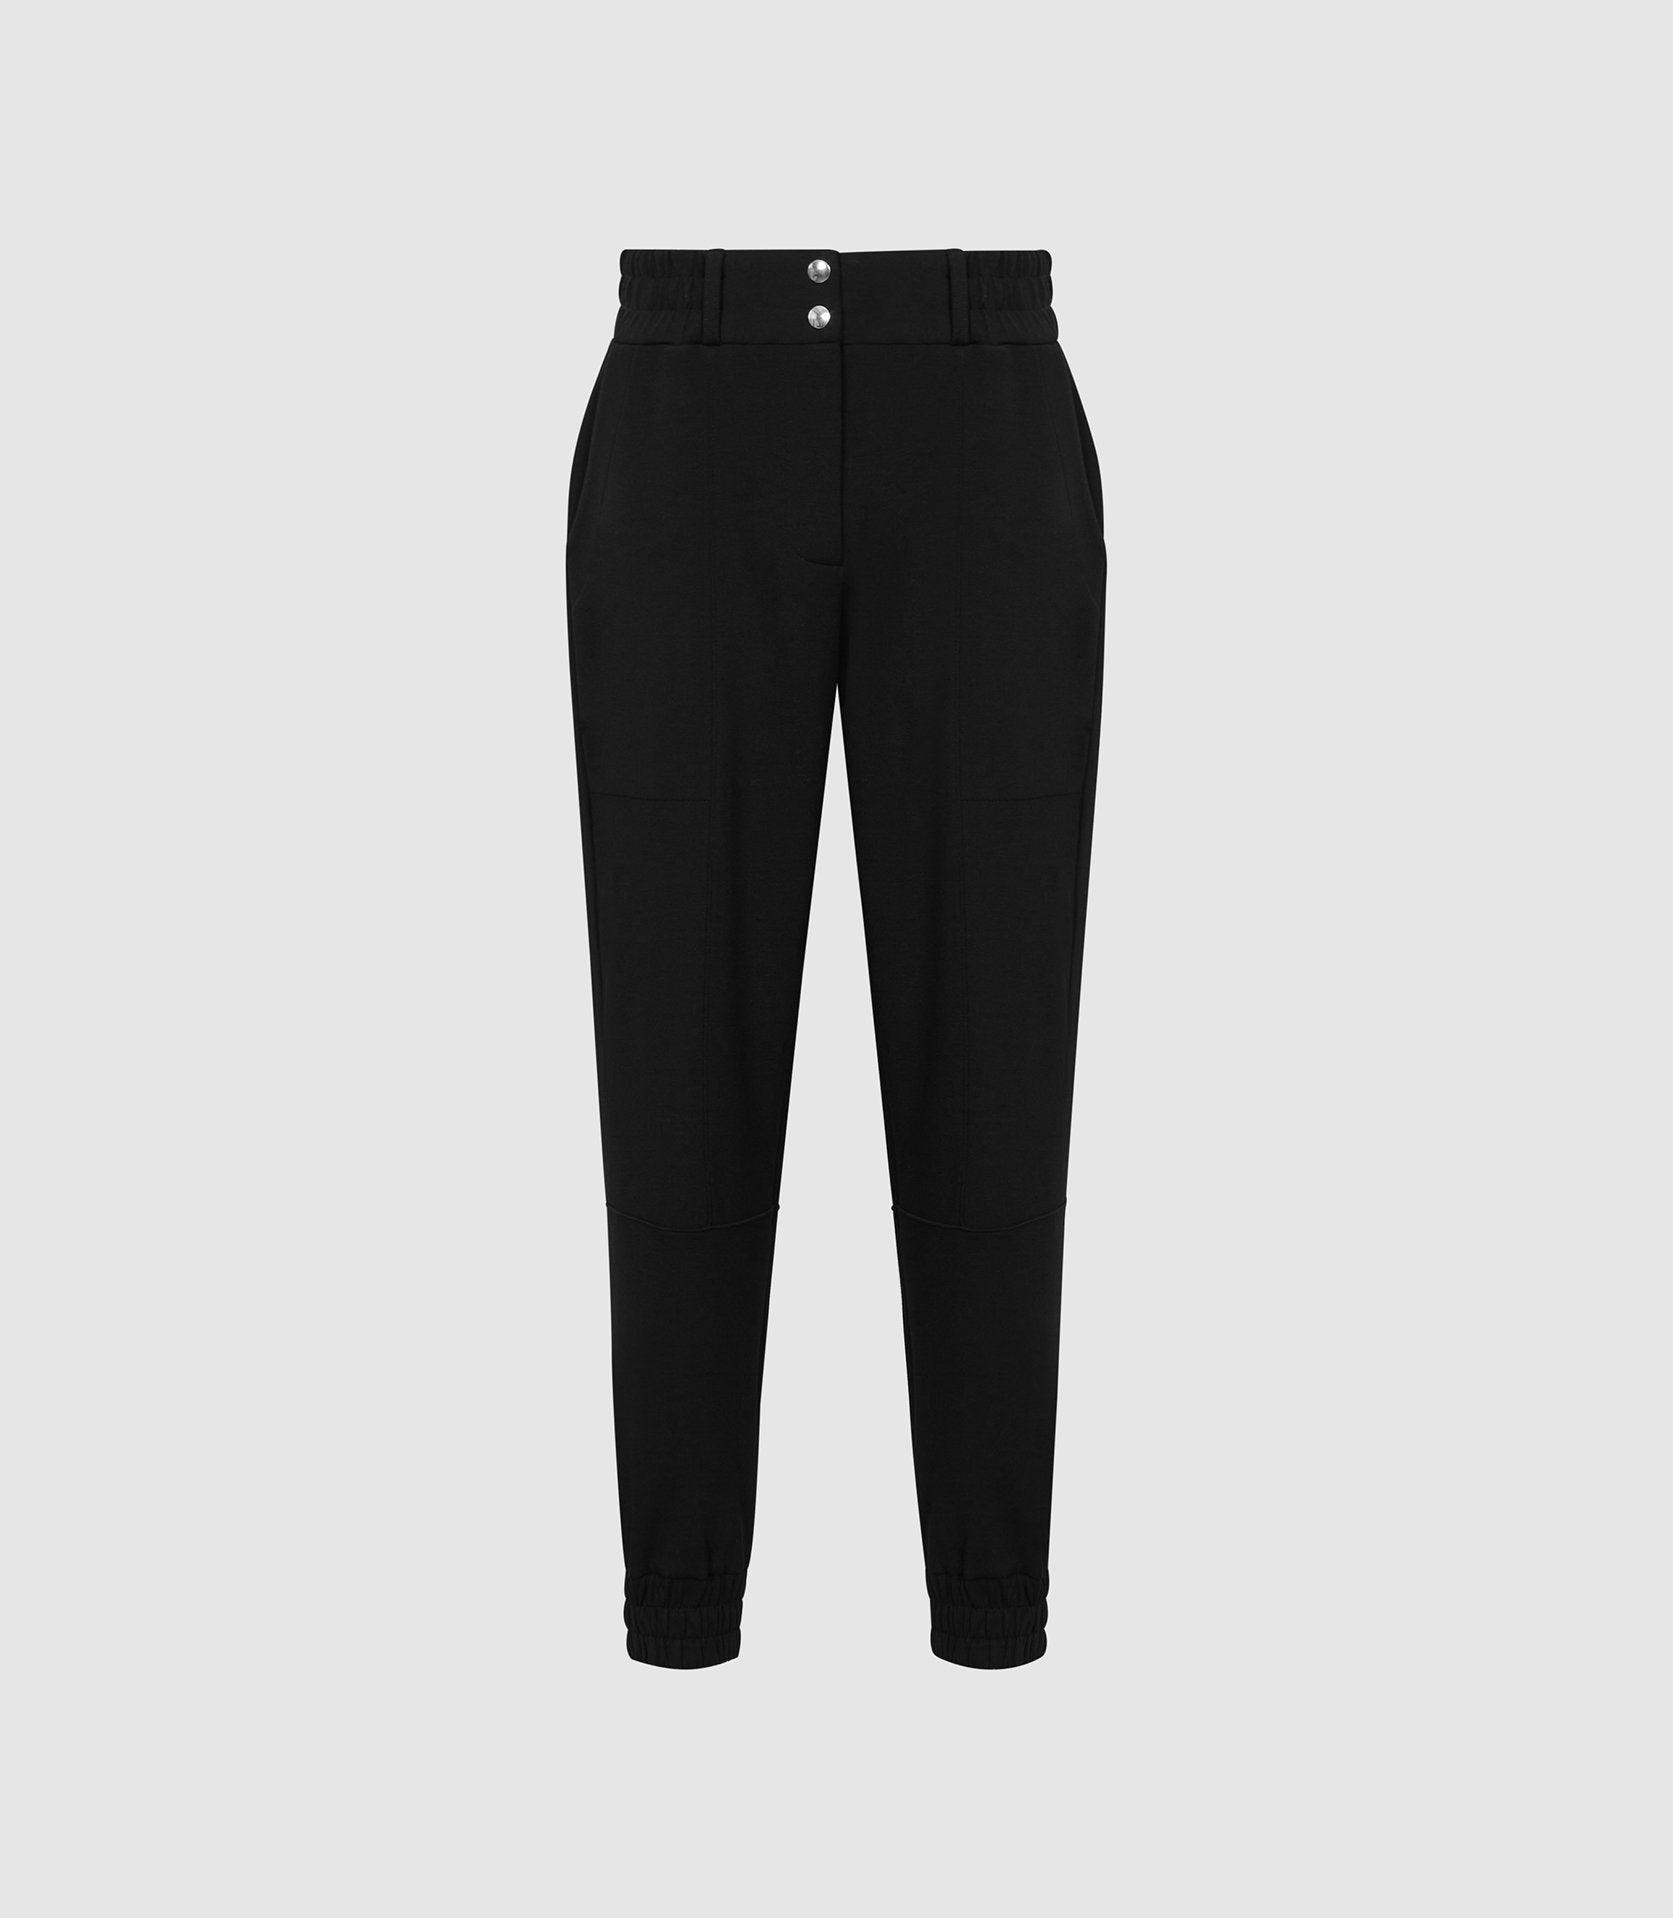 MANDY - TAILORED JOGGERS 3